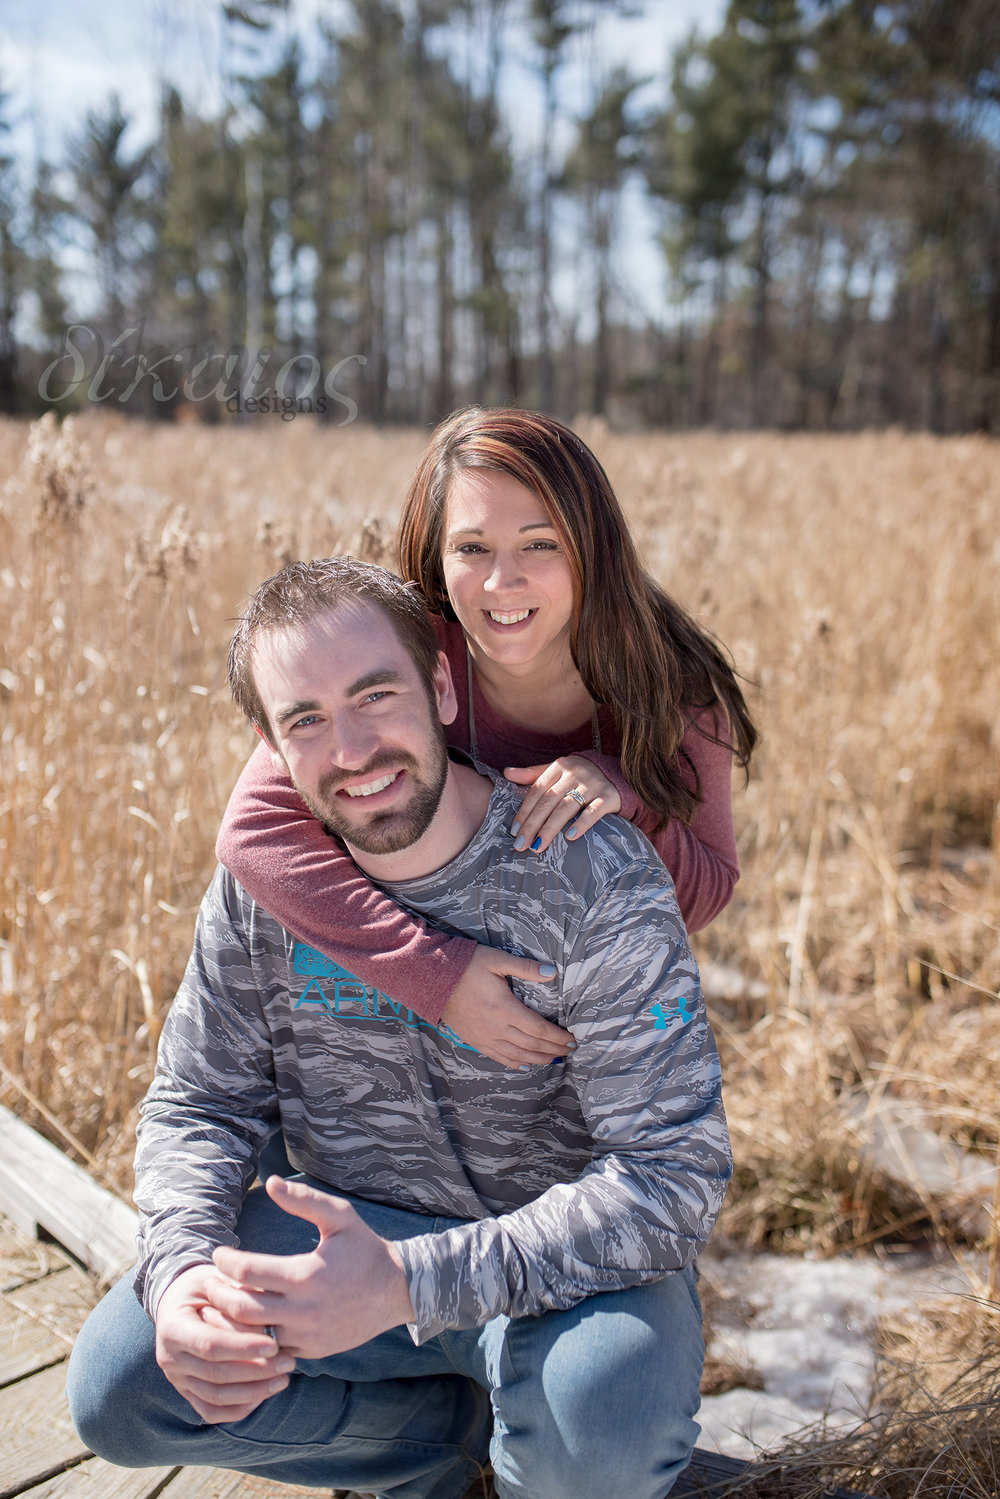 Engagement session for Mitch and Kristen who were married in September.